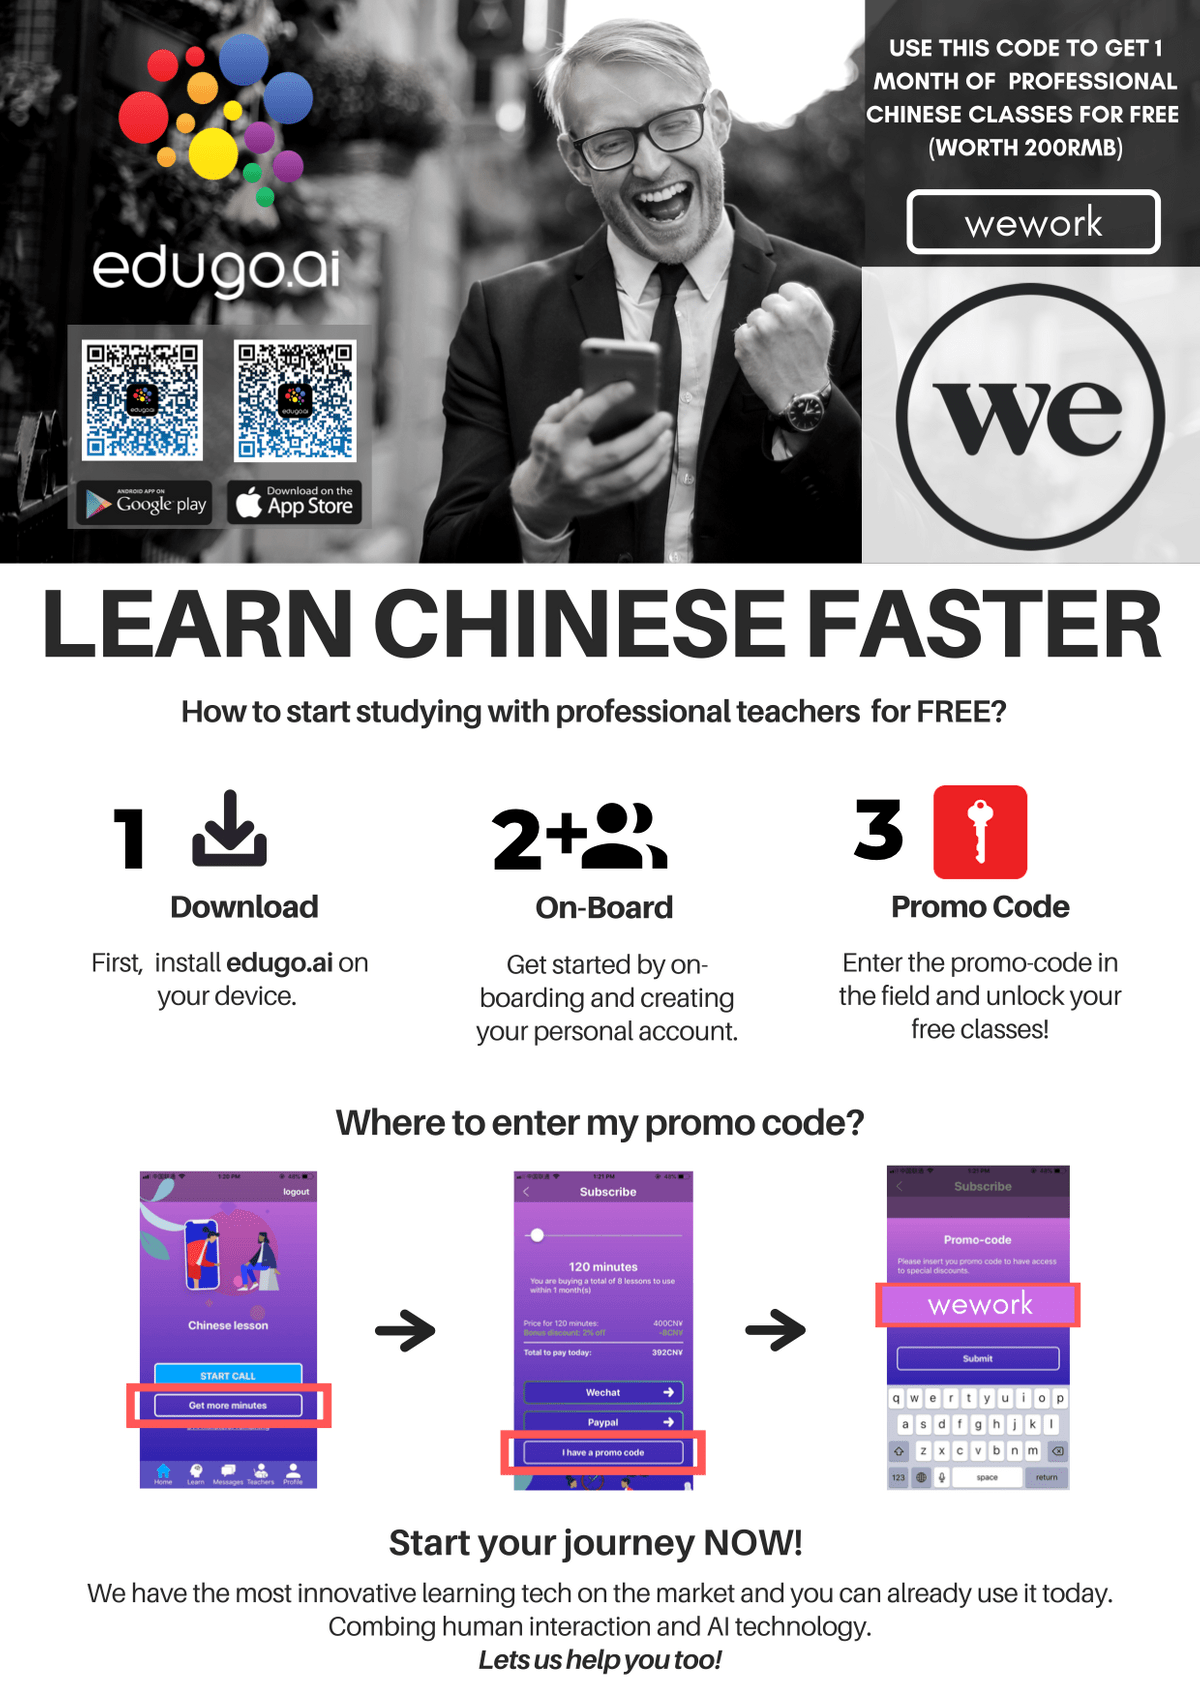 Follow these instructions as a WeWork member to access the perks offered by edugo.ai!